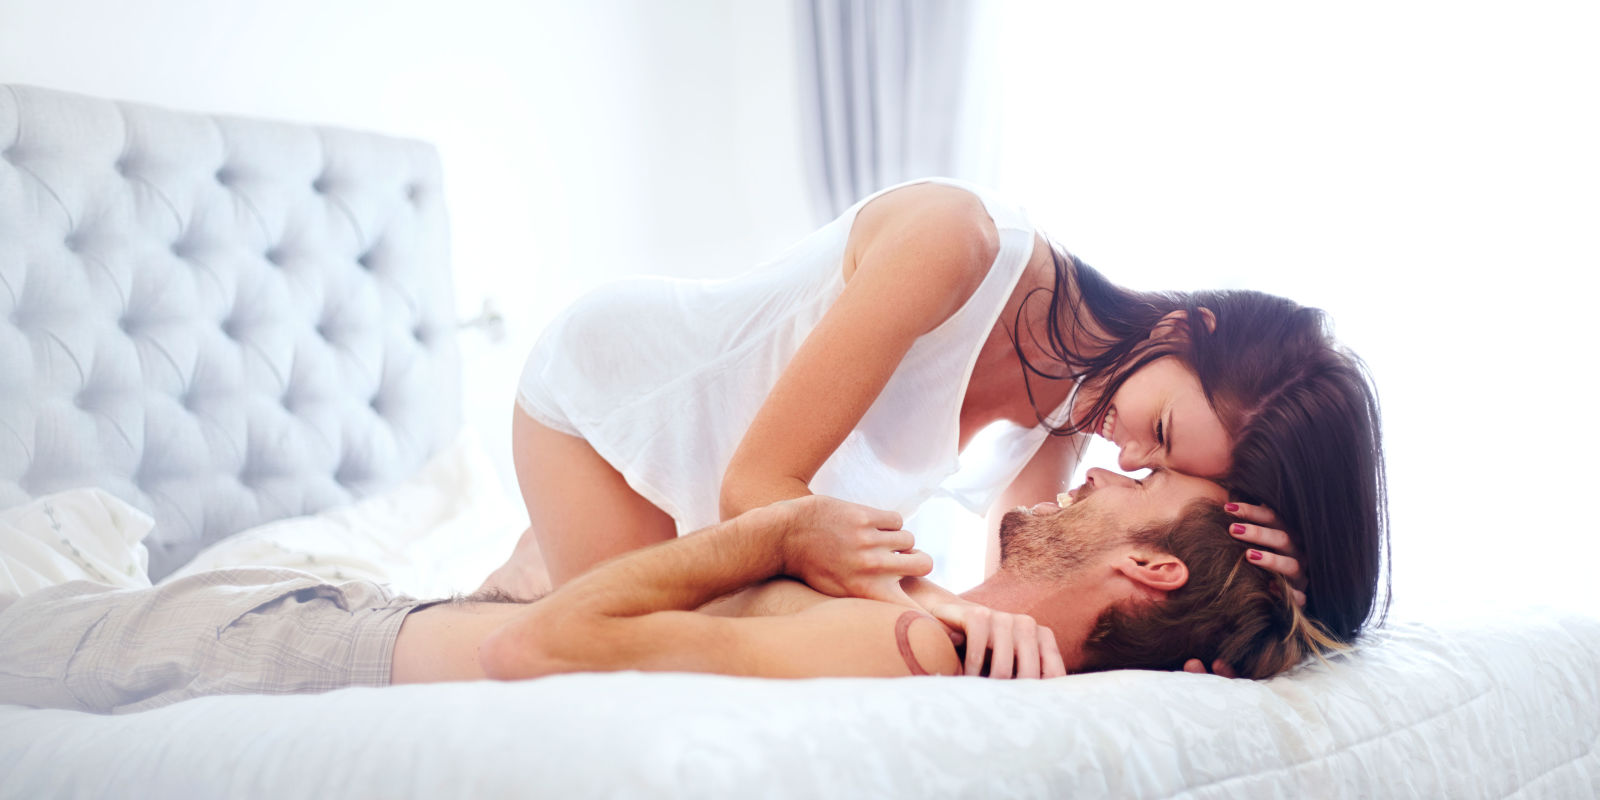 sexual wellbeing sex is good for mental and physical health sexual difficulties woodbridge therapy